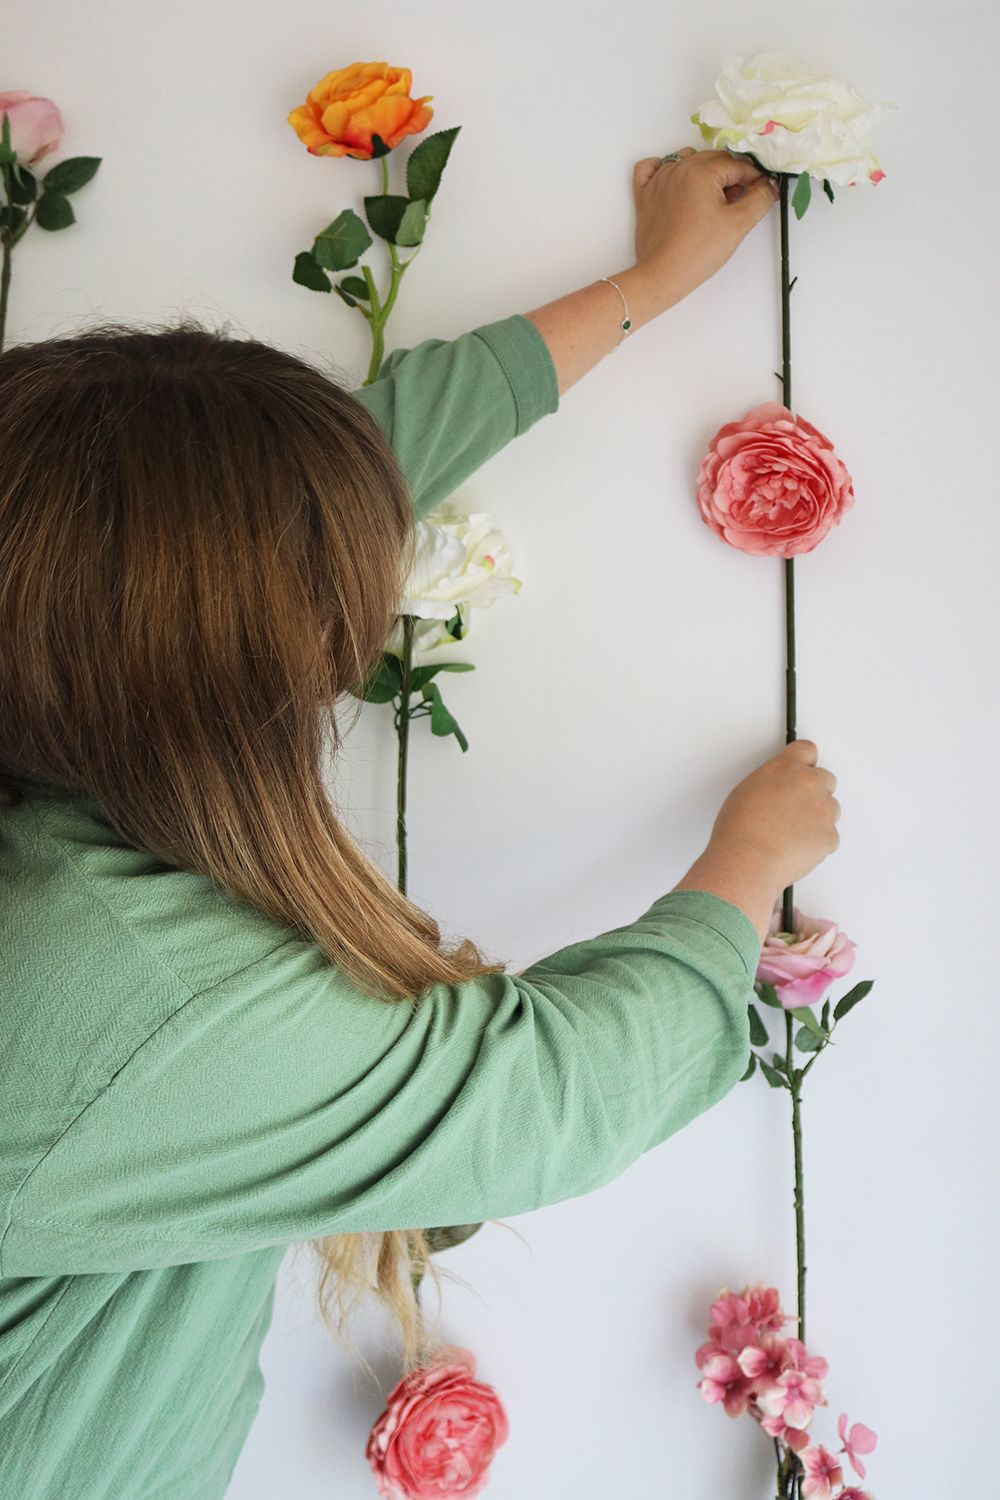 Pin by The Buttermilk Rose on DIY Crafts in 2019 Flower